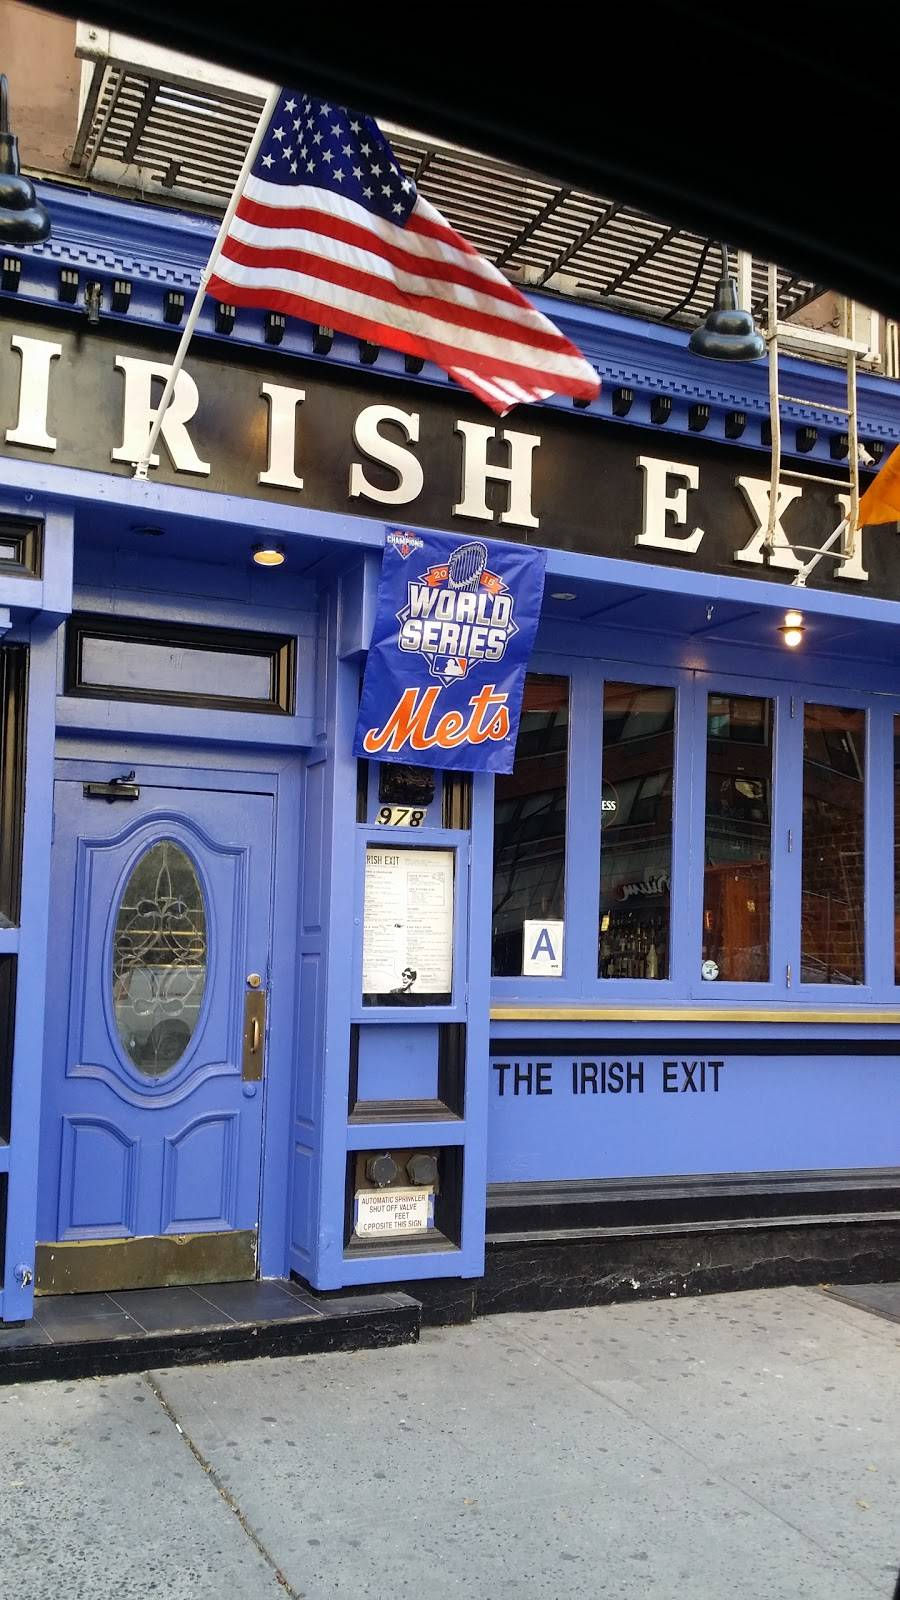 The Irish Exit | restaurant | 978 2nd Ave, New York, NY 10022, USA | 2127558383 OR +1 212-755-8383